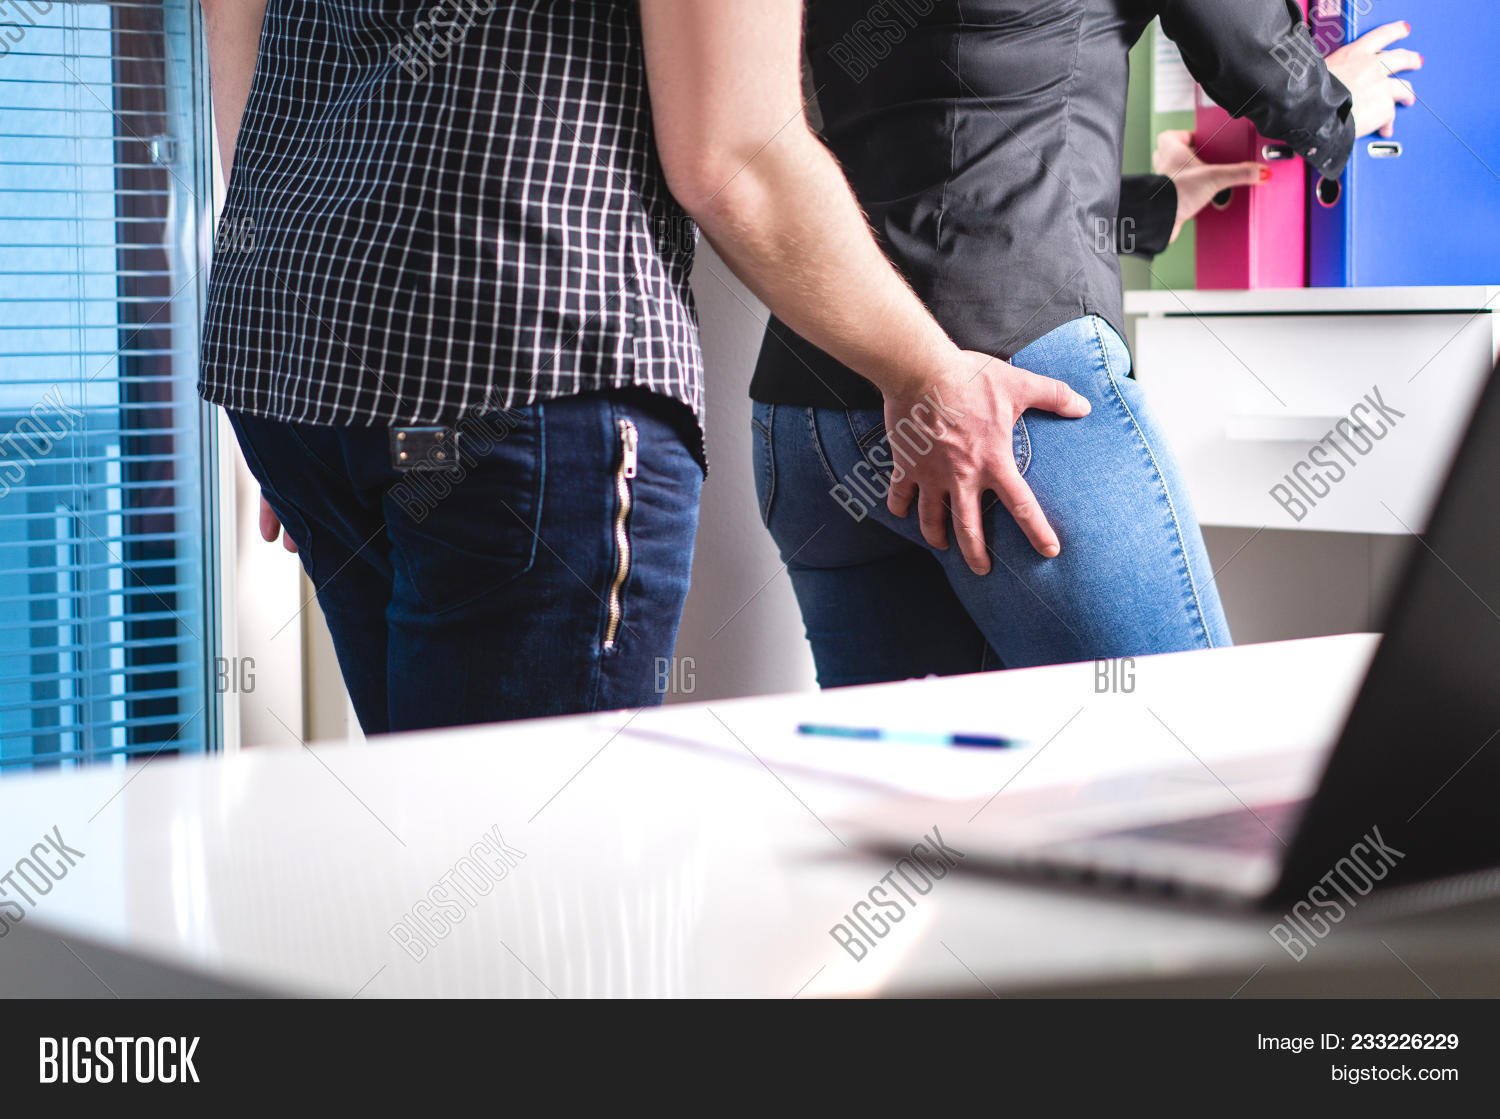 Ass Grope sexual harassment image & photo (free trial) | bigstock